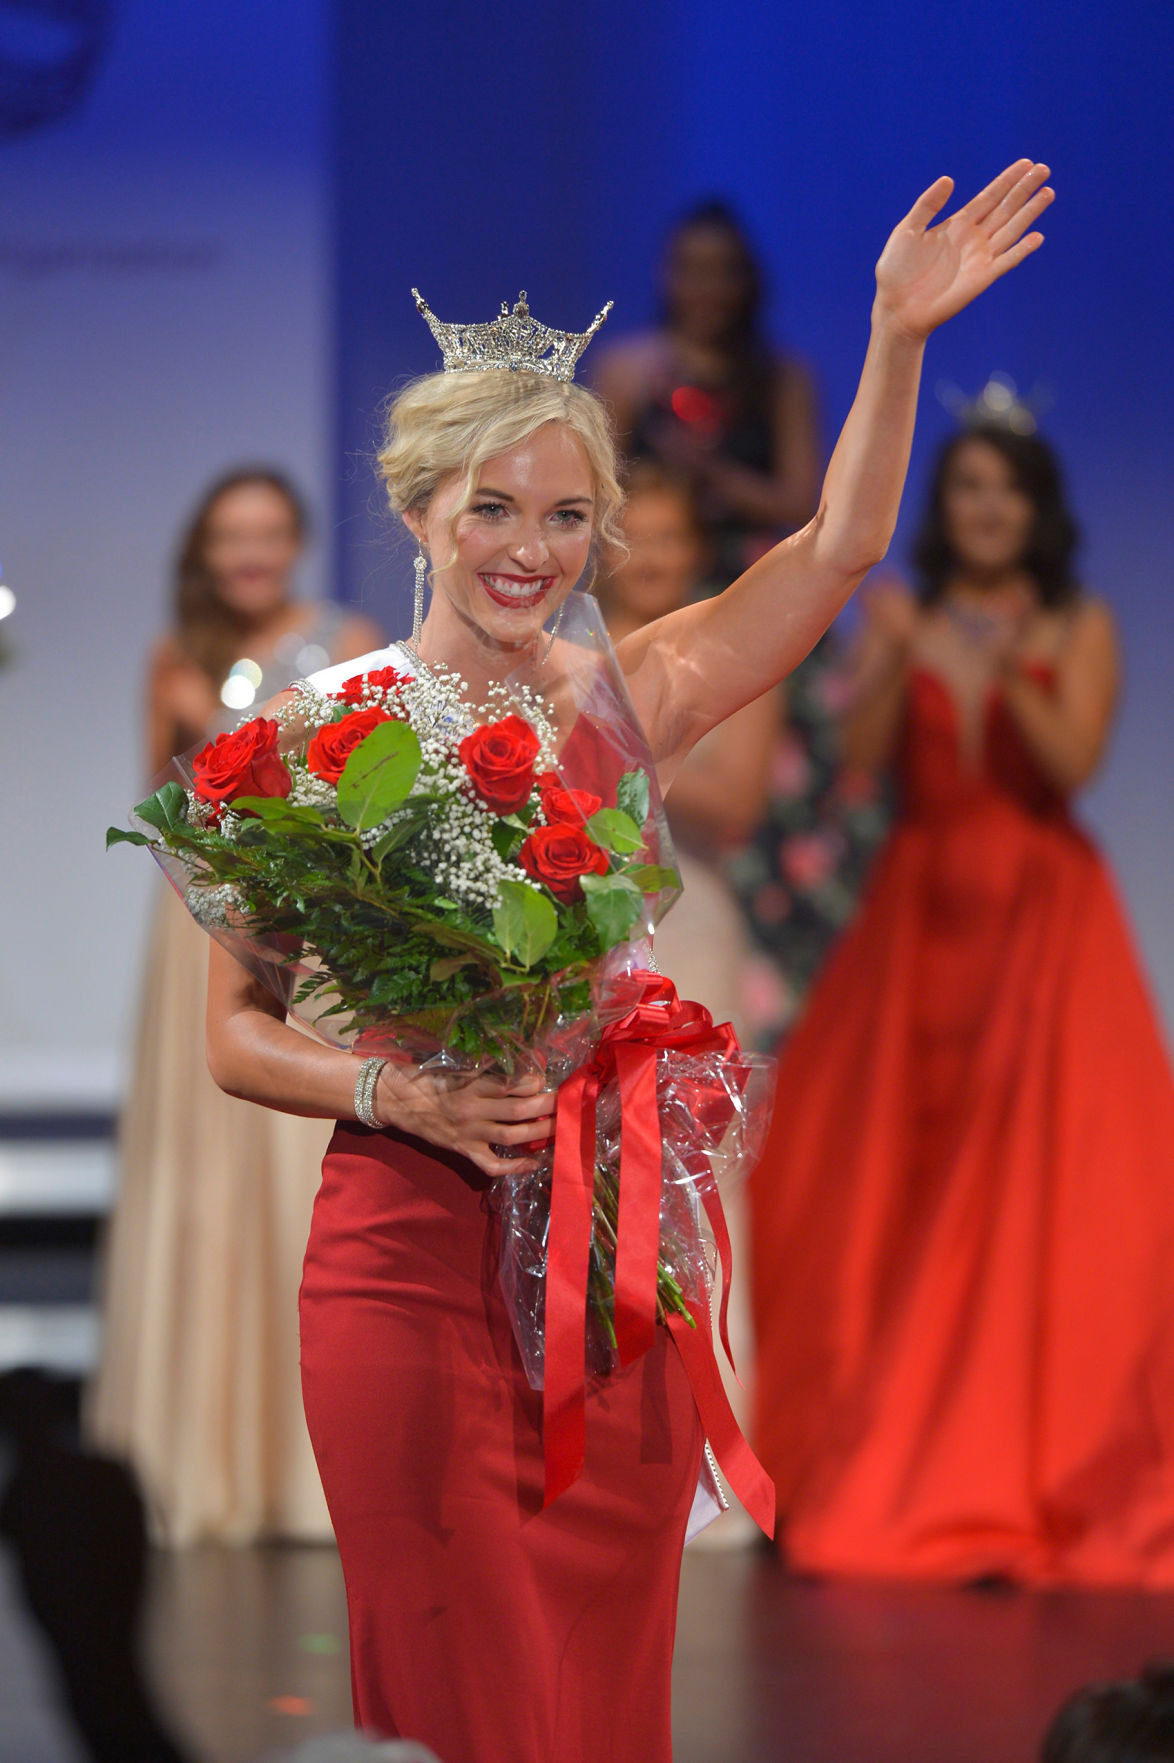 sioux center native named miss wyoming sioux center news